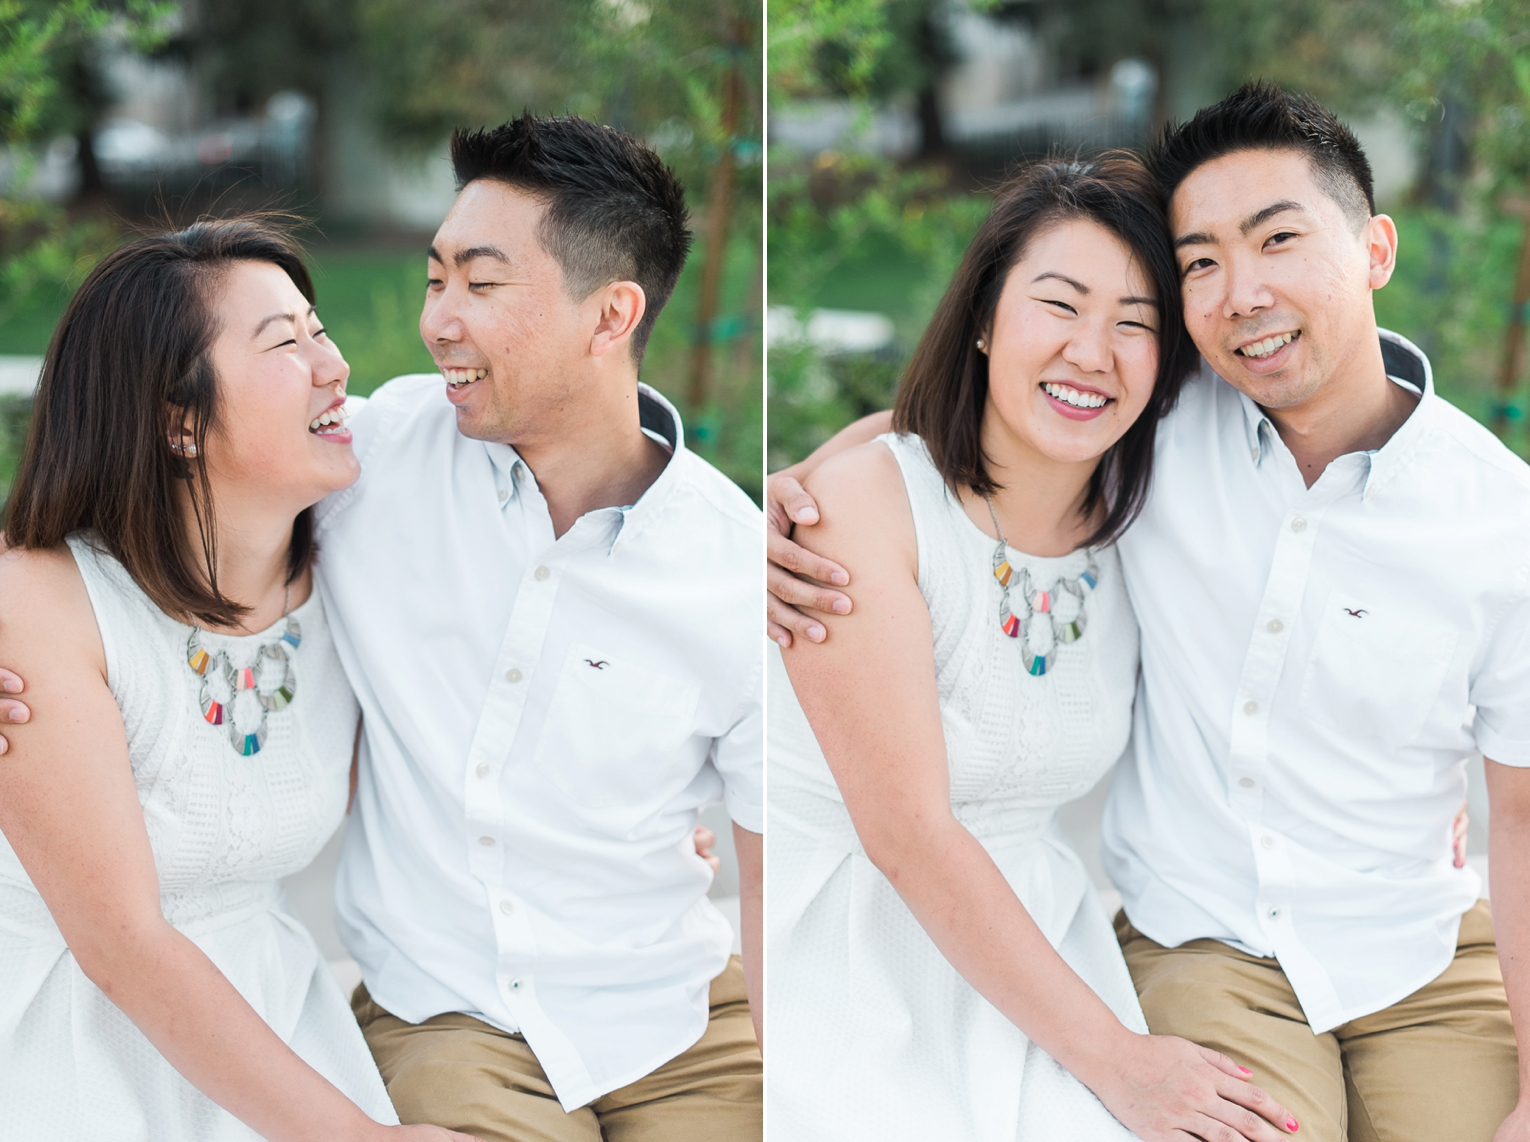 Old town Pasadena Engagement Photos | Brandi Welles Photographer_0011